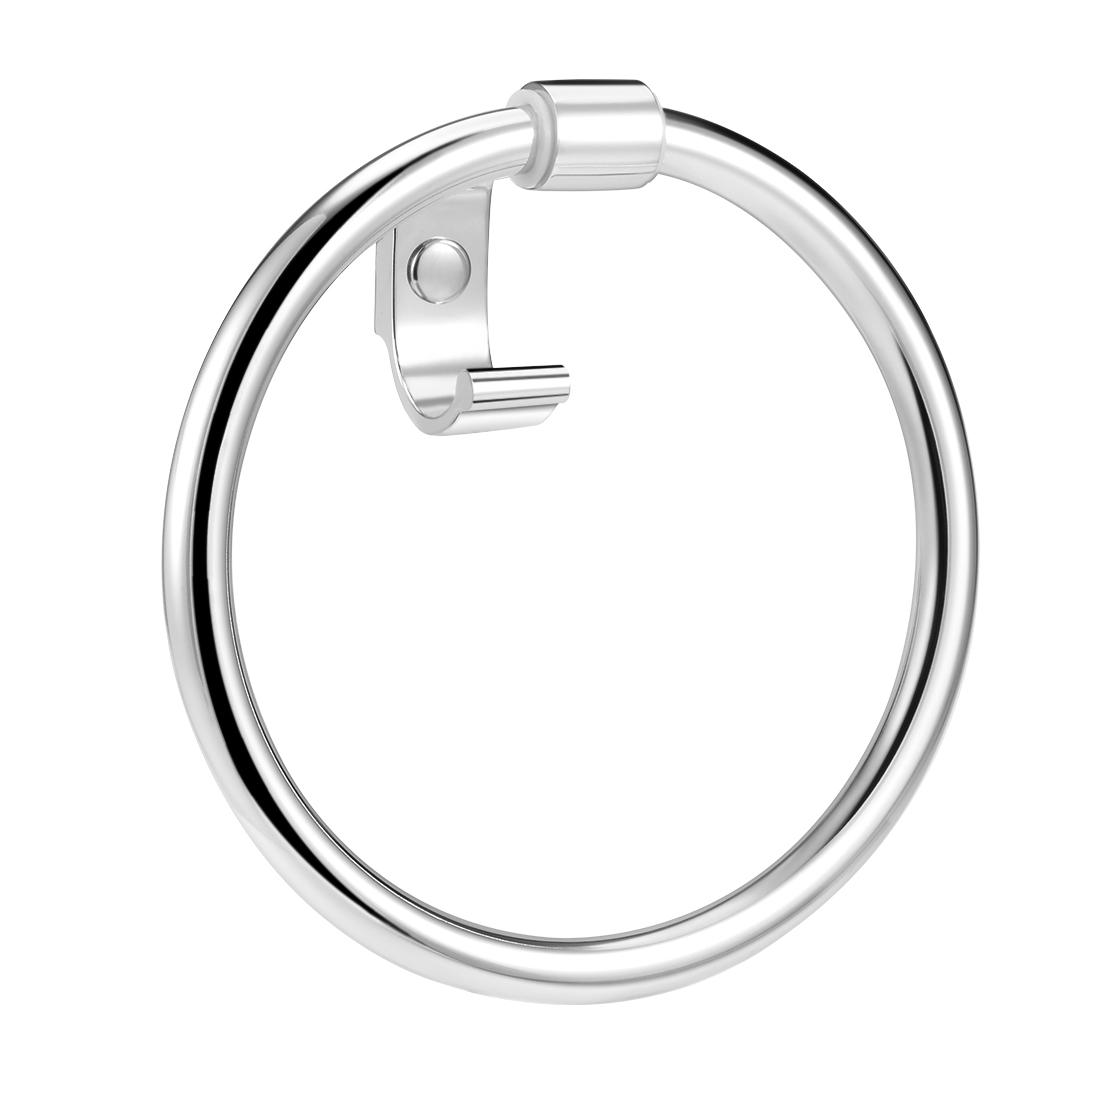 201 Stainless Steel Bathroom Towel Ring Chrome Plated w Hook